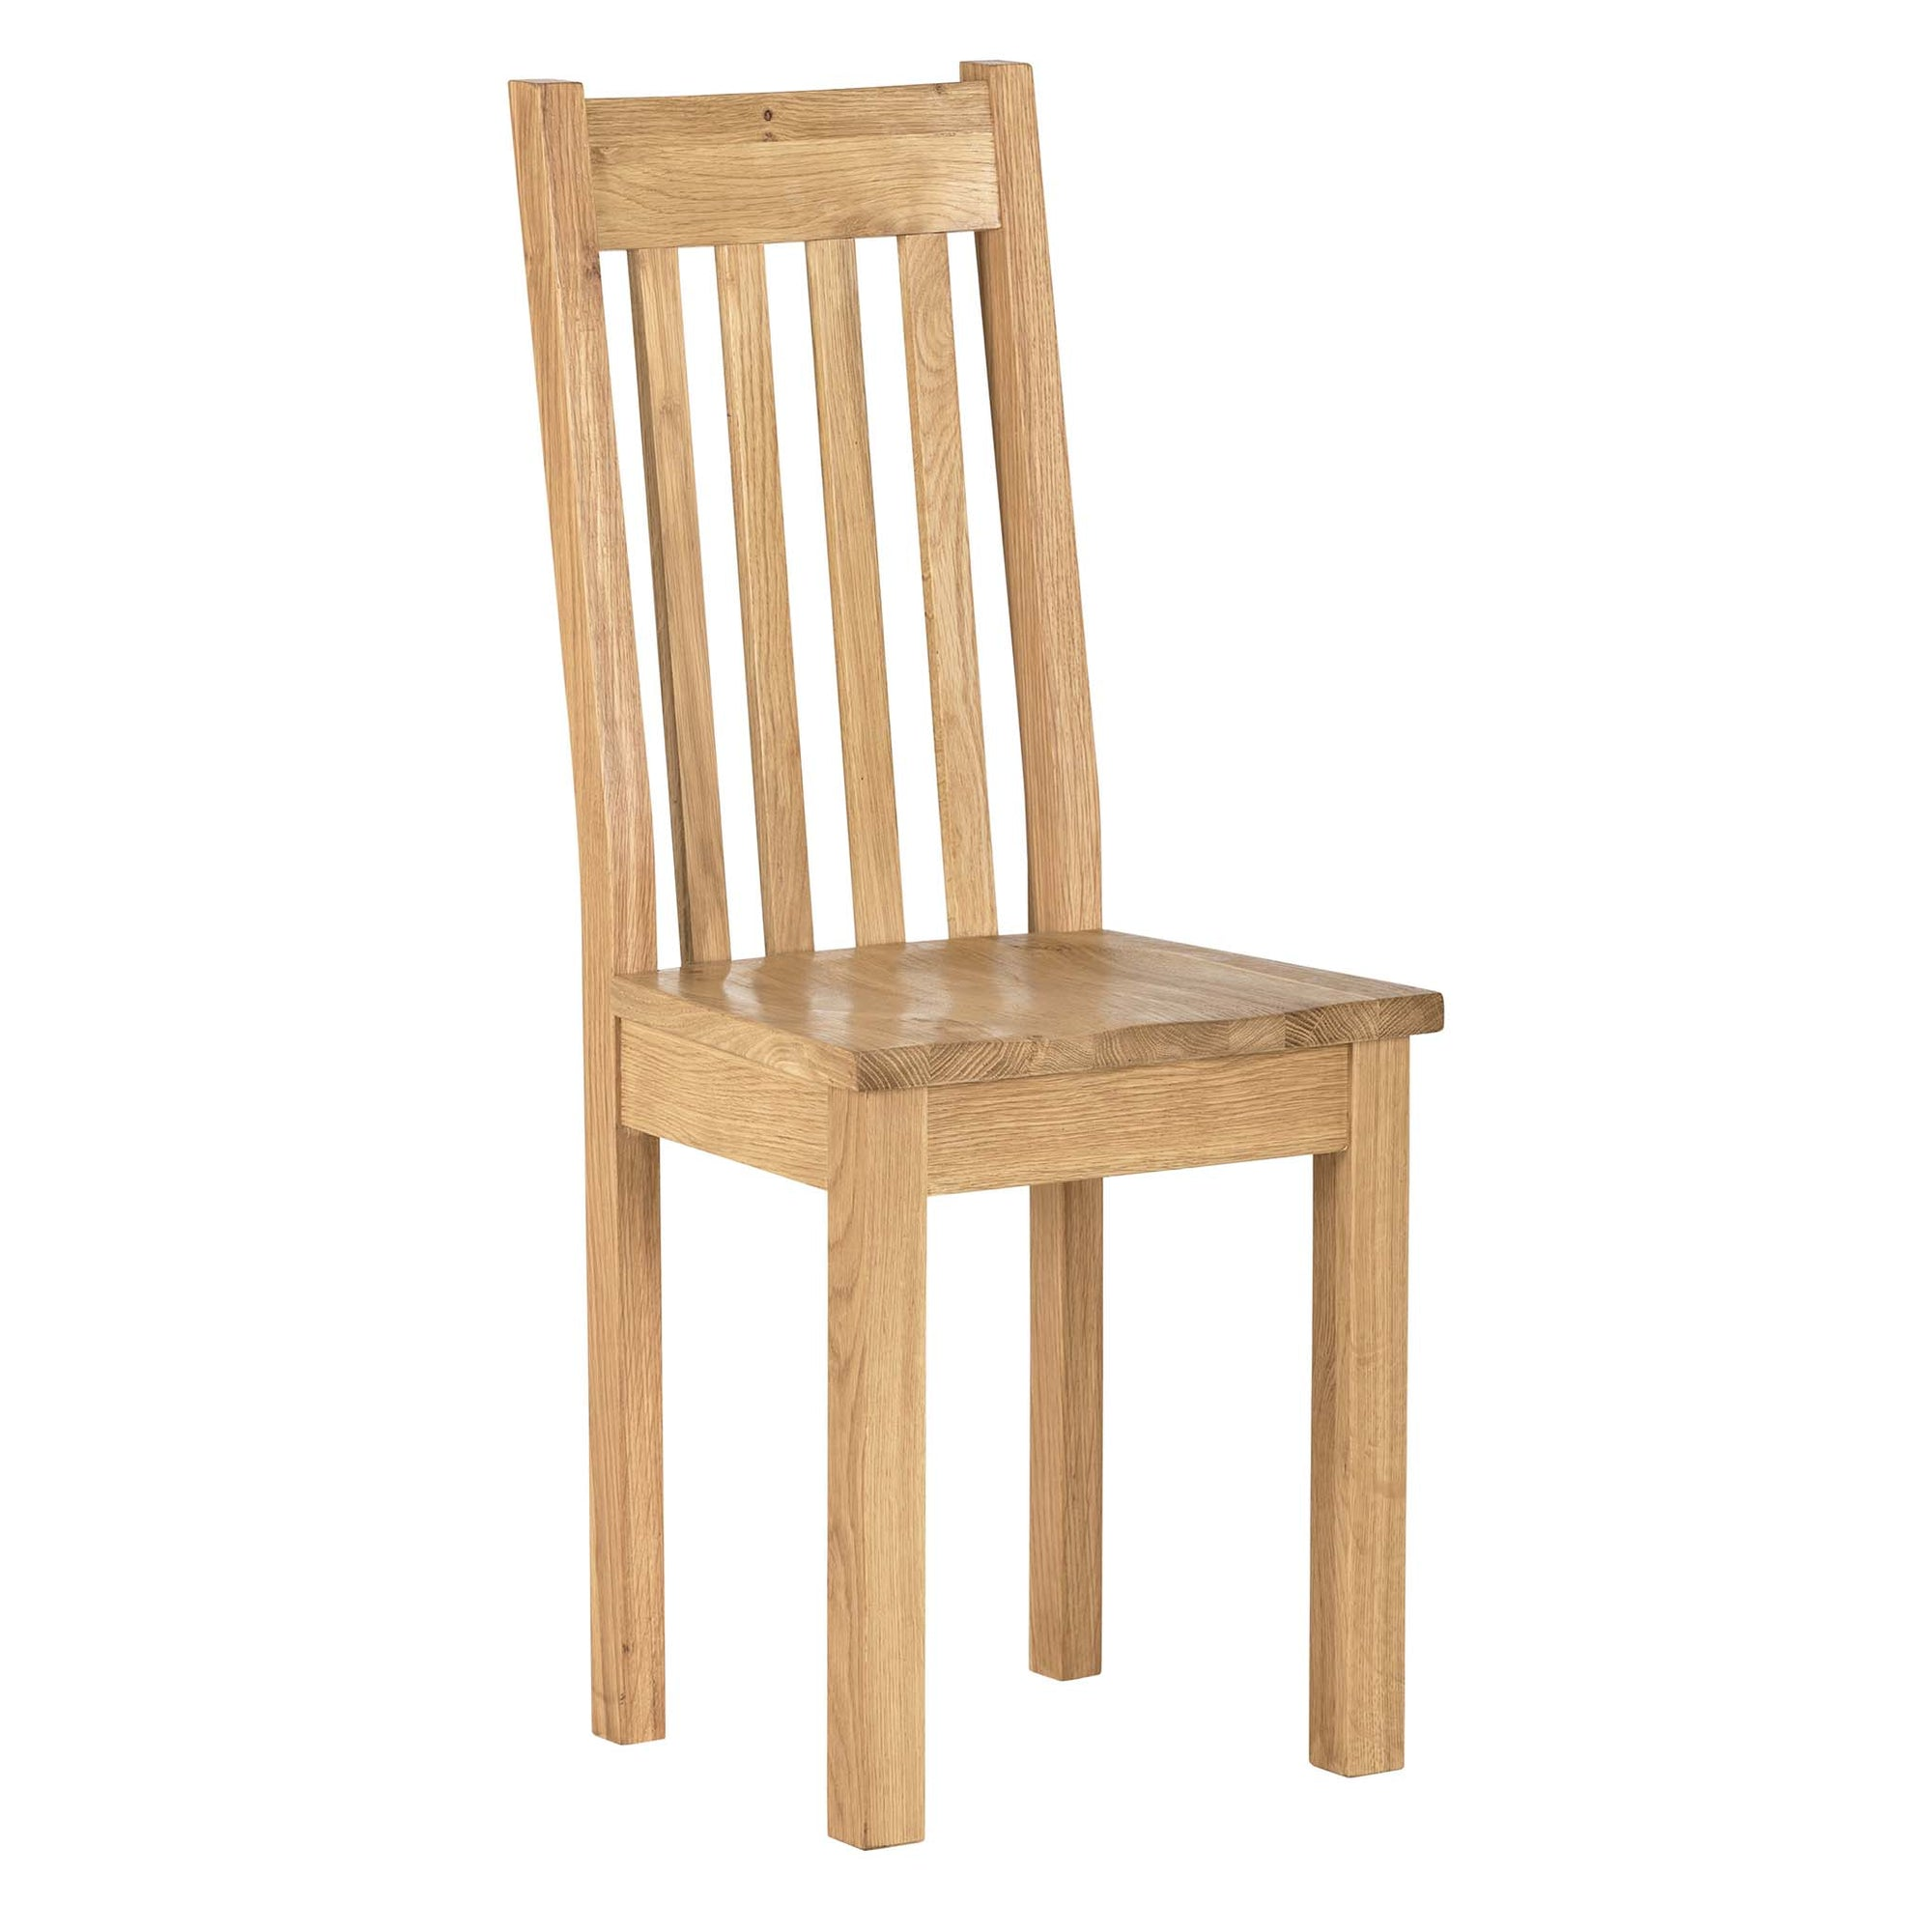 Charlestown Oak Dining Chair with Timber Seat by Roseland Furniture